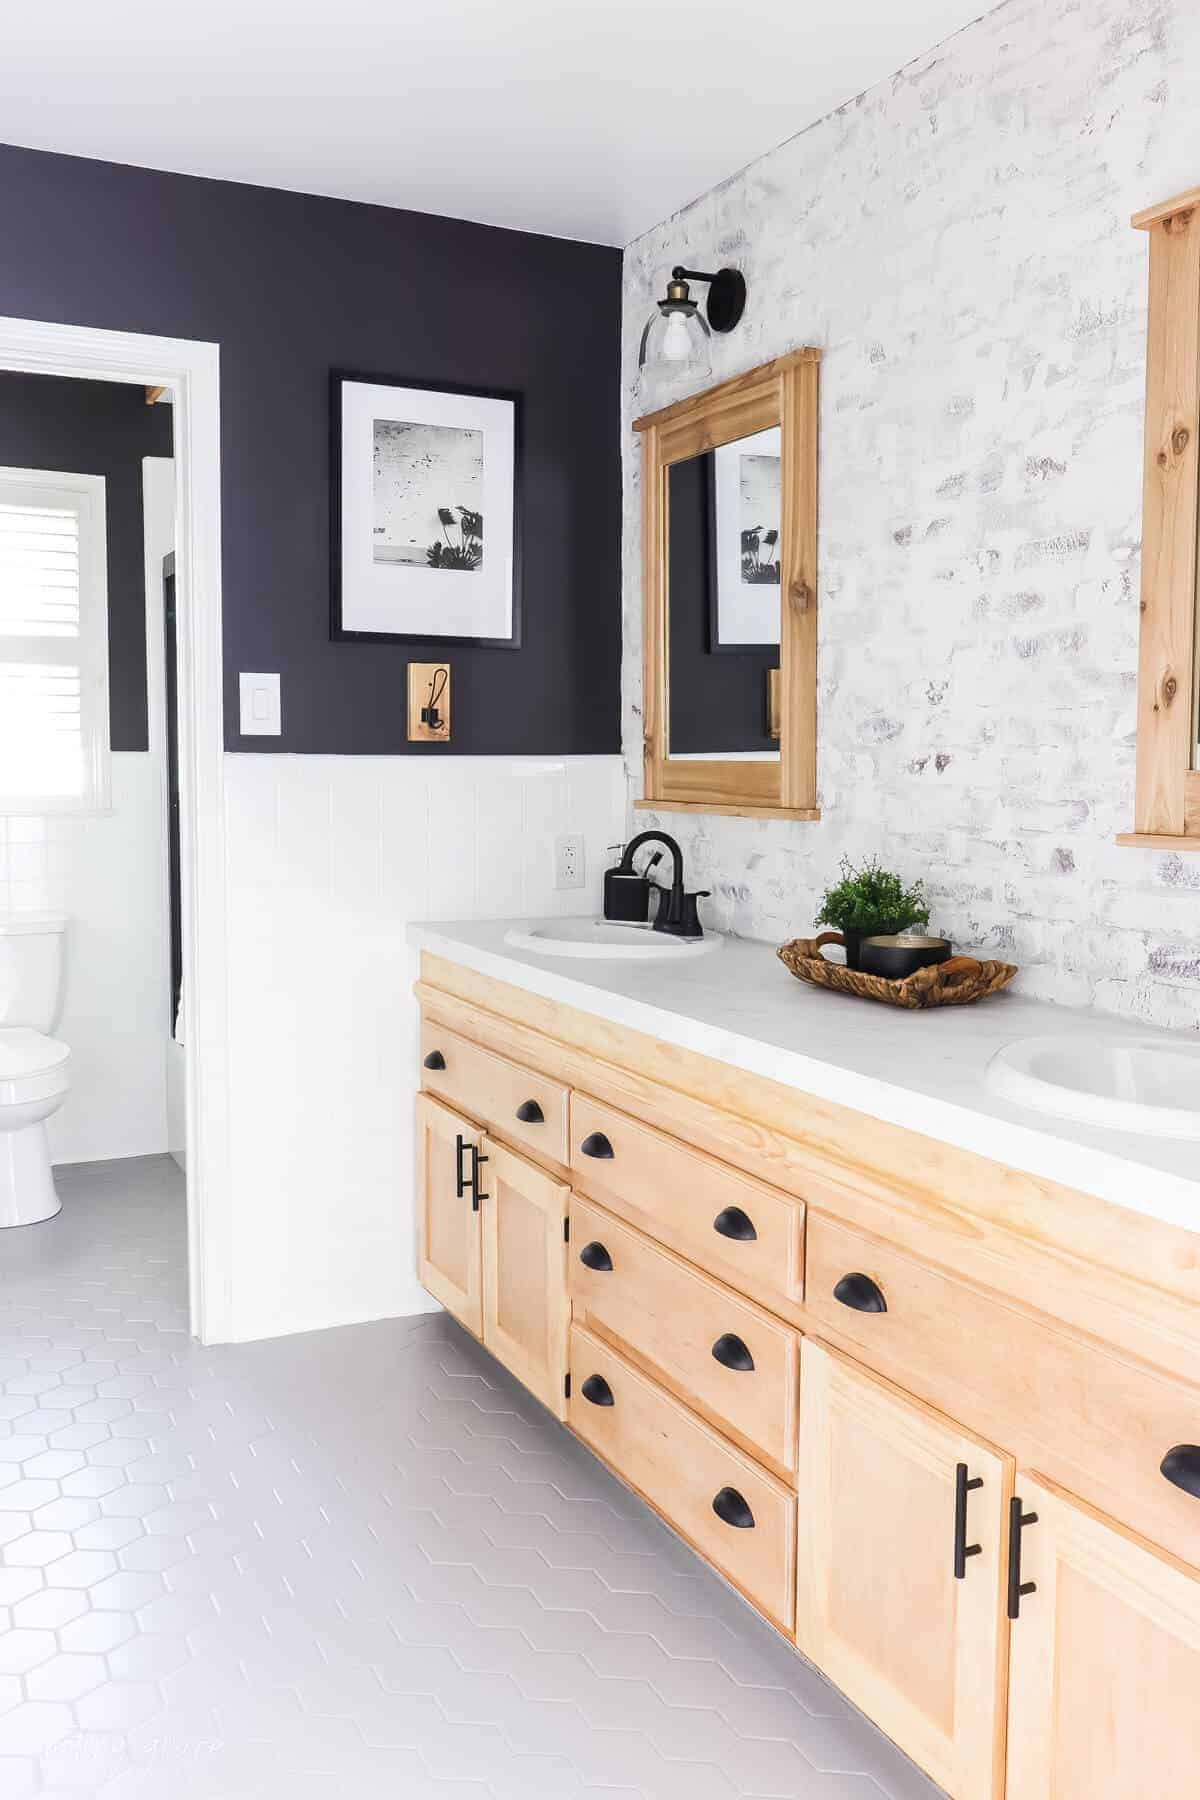 Changed bathrooms tiles for $150 bucks with white painted tile walls with gray painted hexagon tile floor with black painted walls and cedar wood elements.